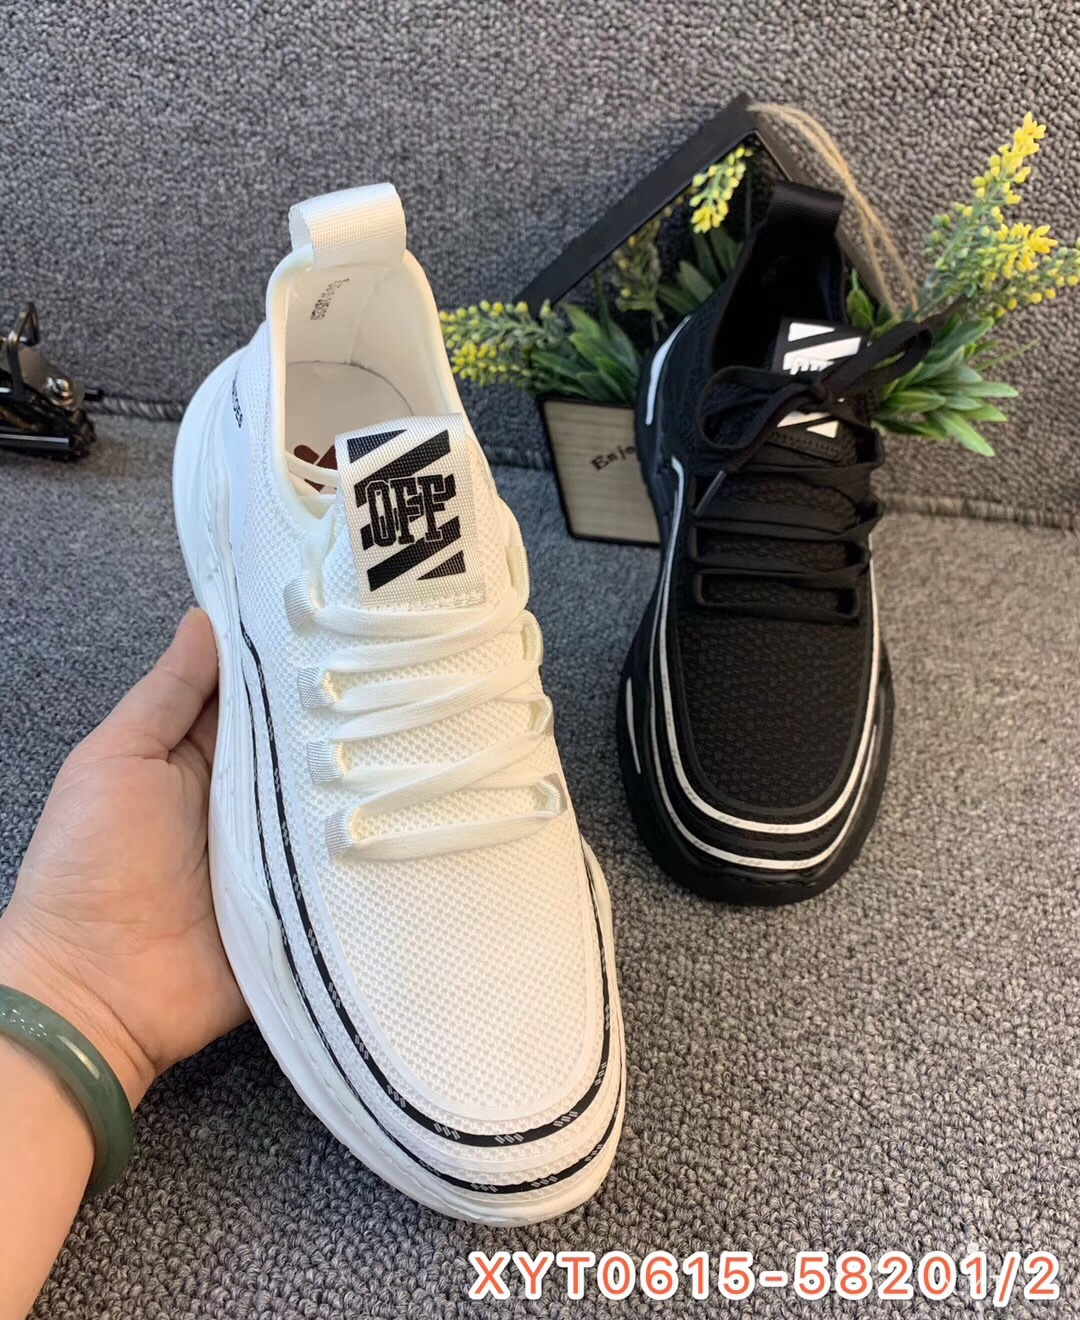 [West Asia pictures] 20 years new flying fabric leisure shoes, versatile shoes, fashionable shoes, high top shoes and sports shoes